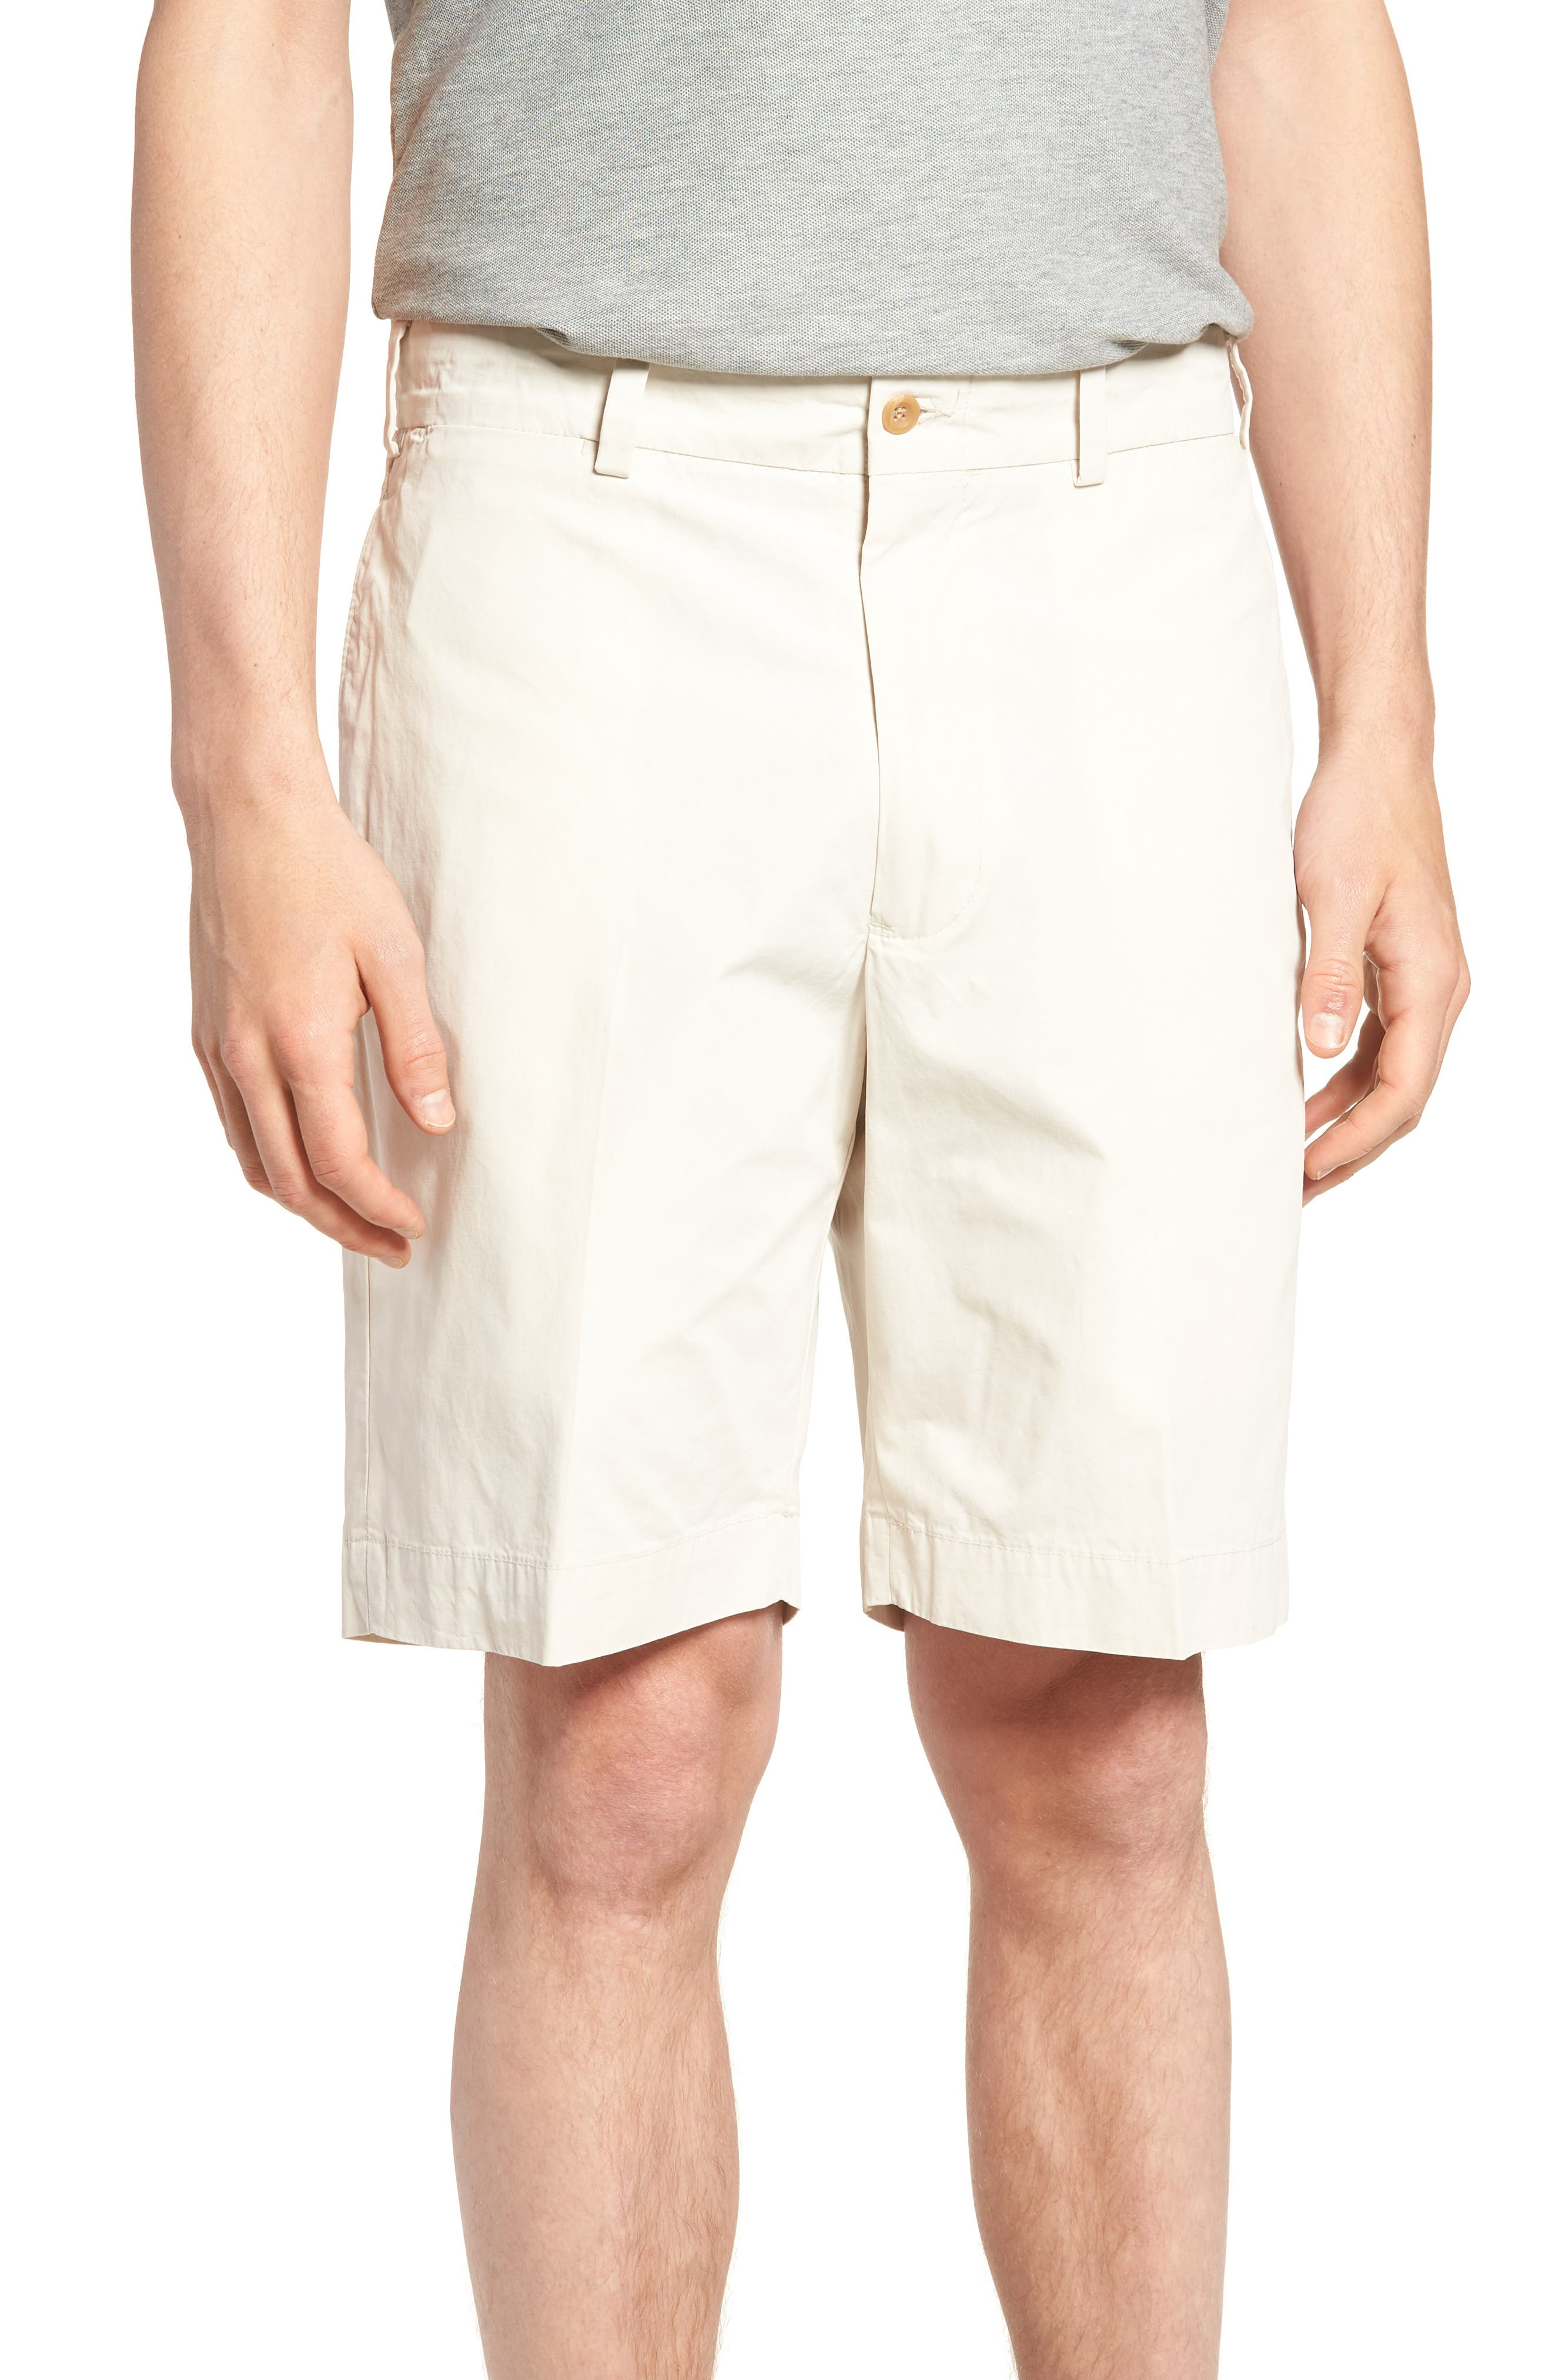 M2 Standard Fit Flat Front Tropical Cotton Poplin Shorts,                         Main,                         color, Sand